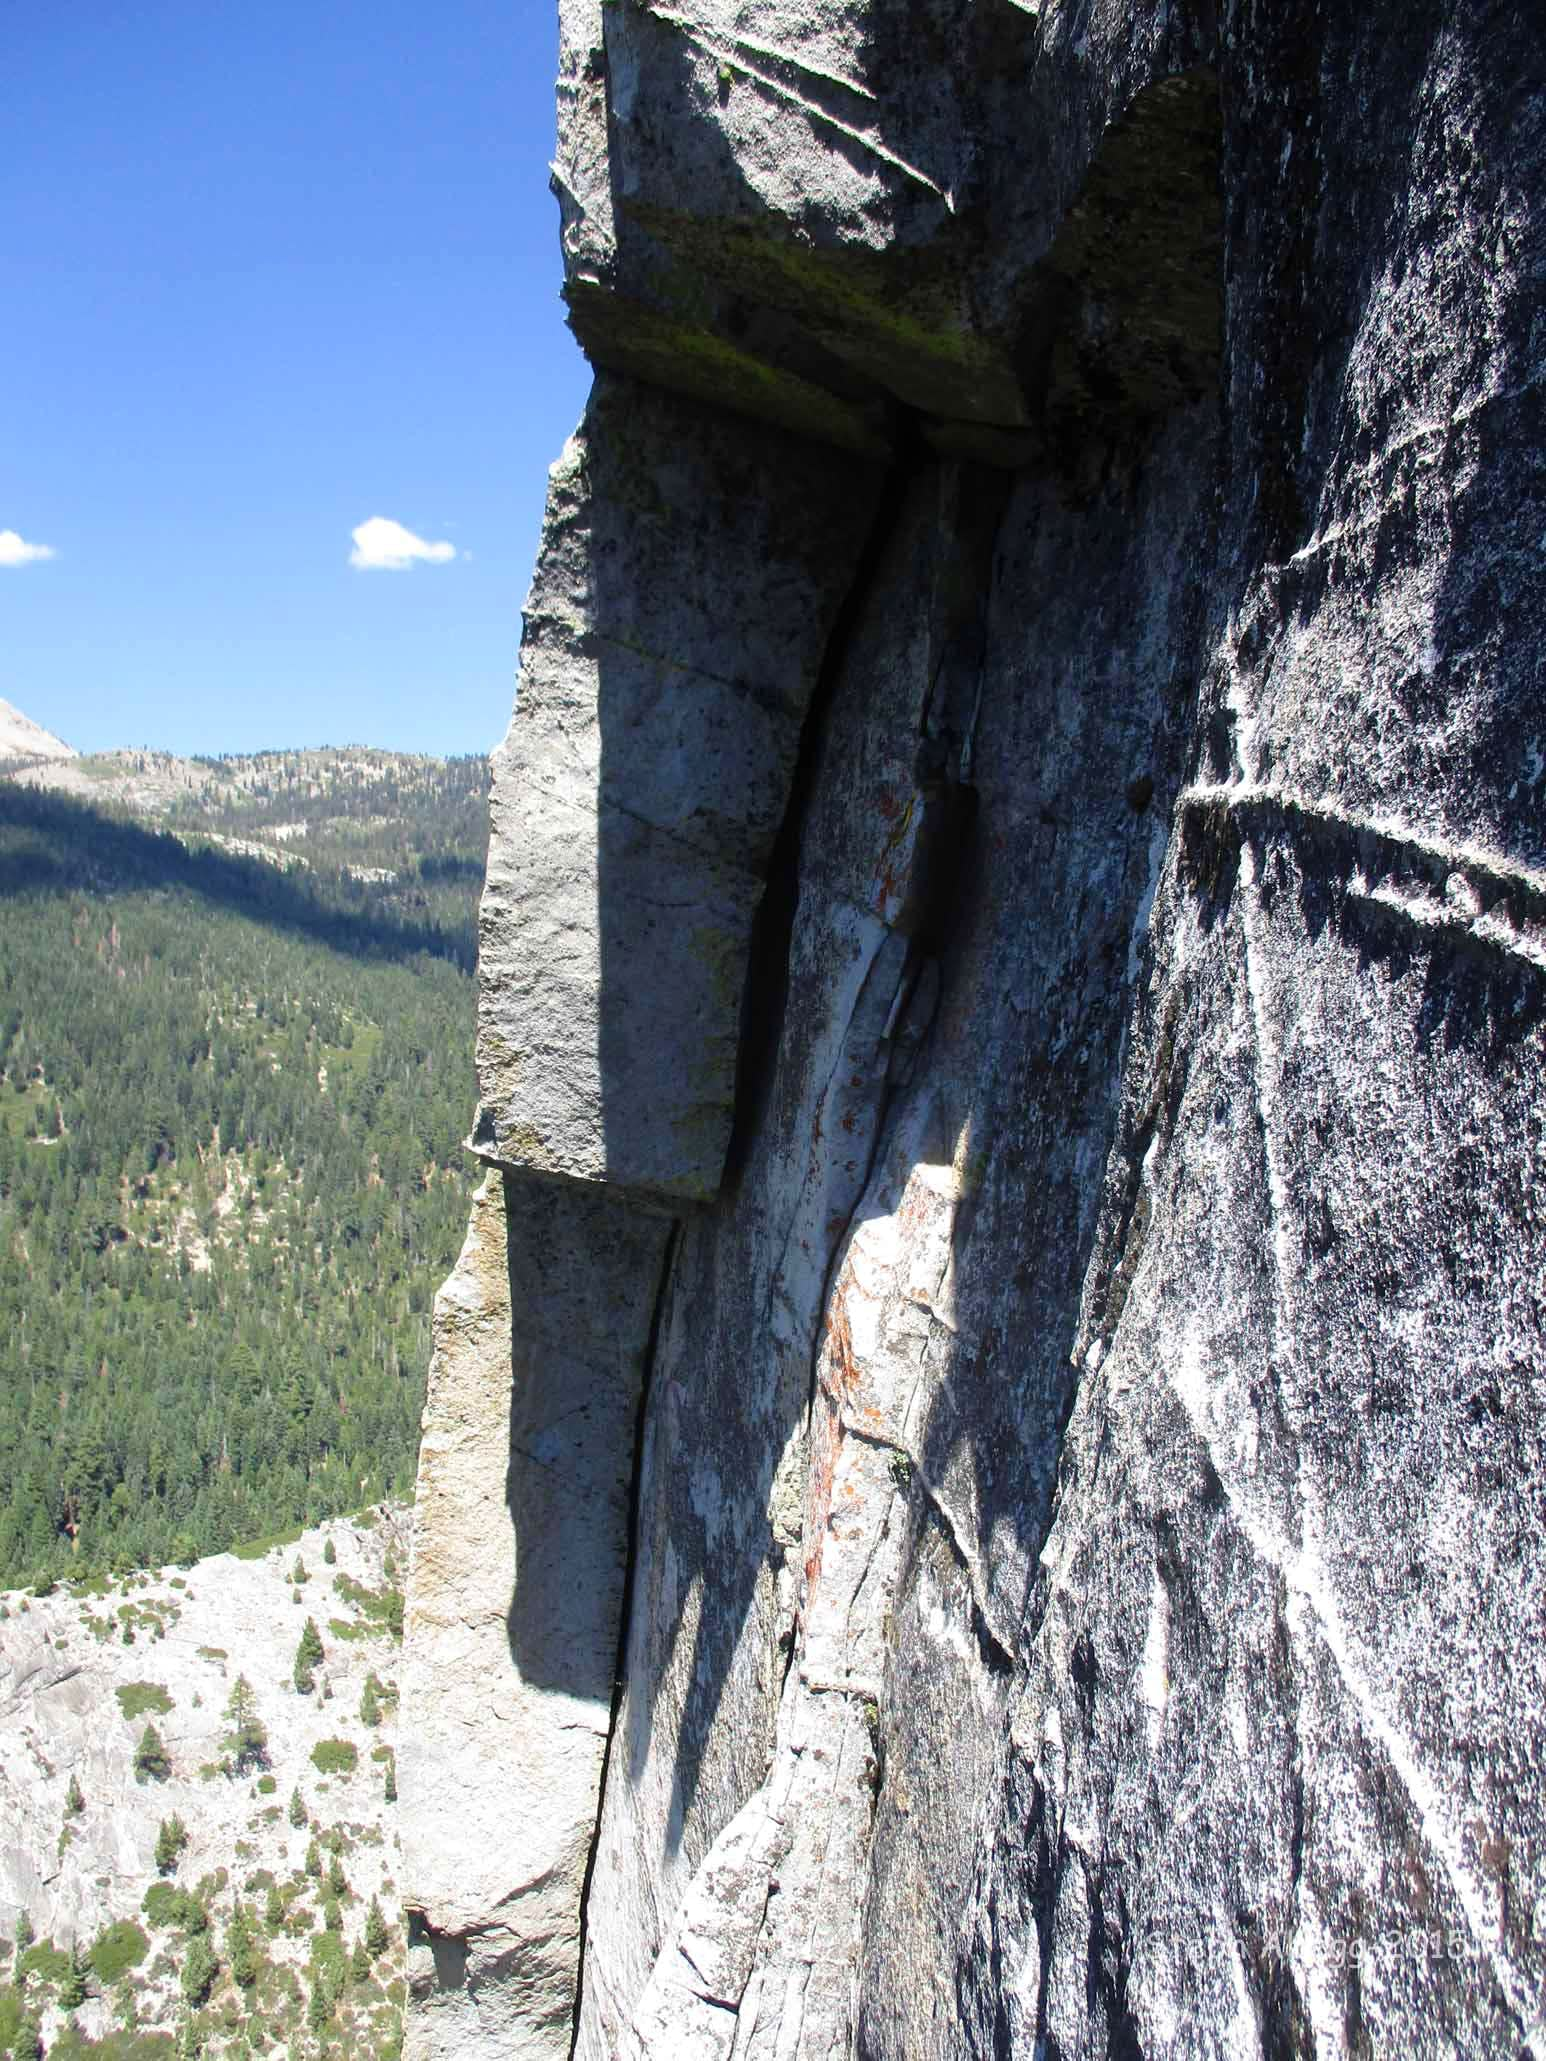 Vanishing Point, 5.10b, 3 Pitches